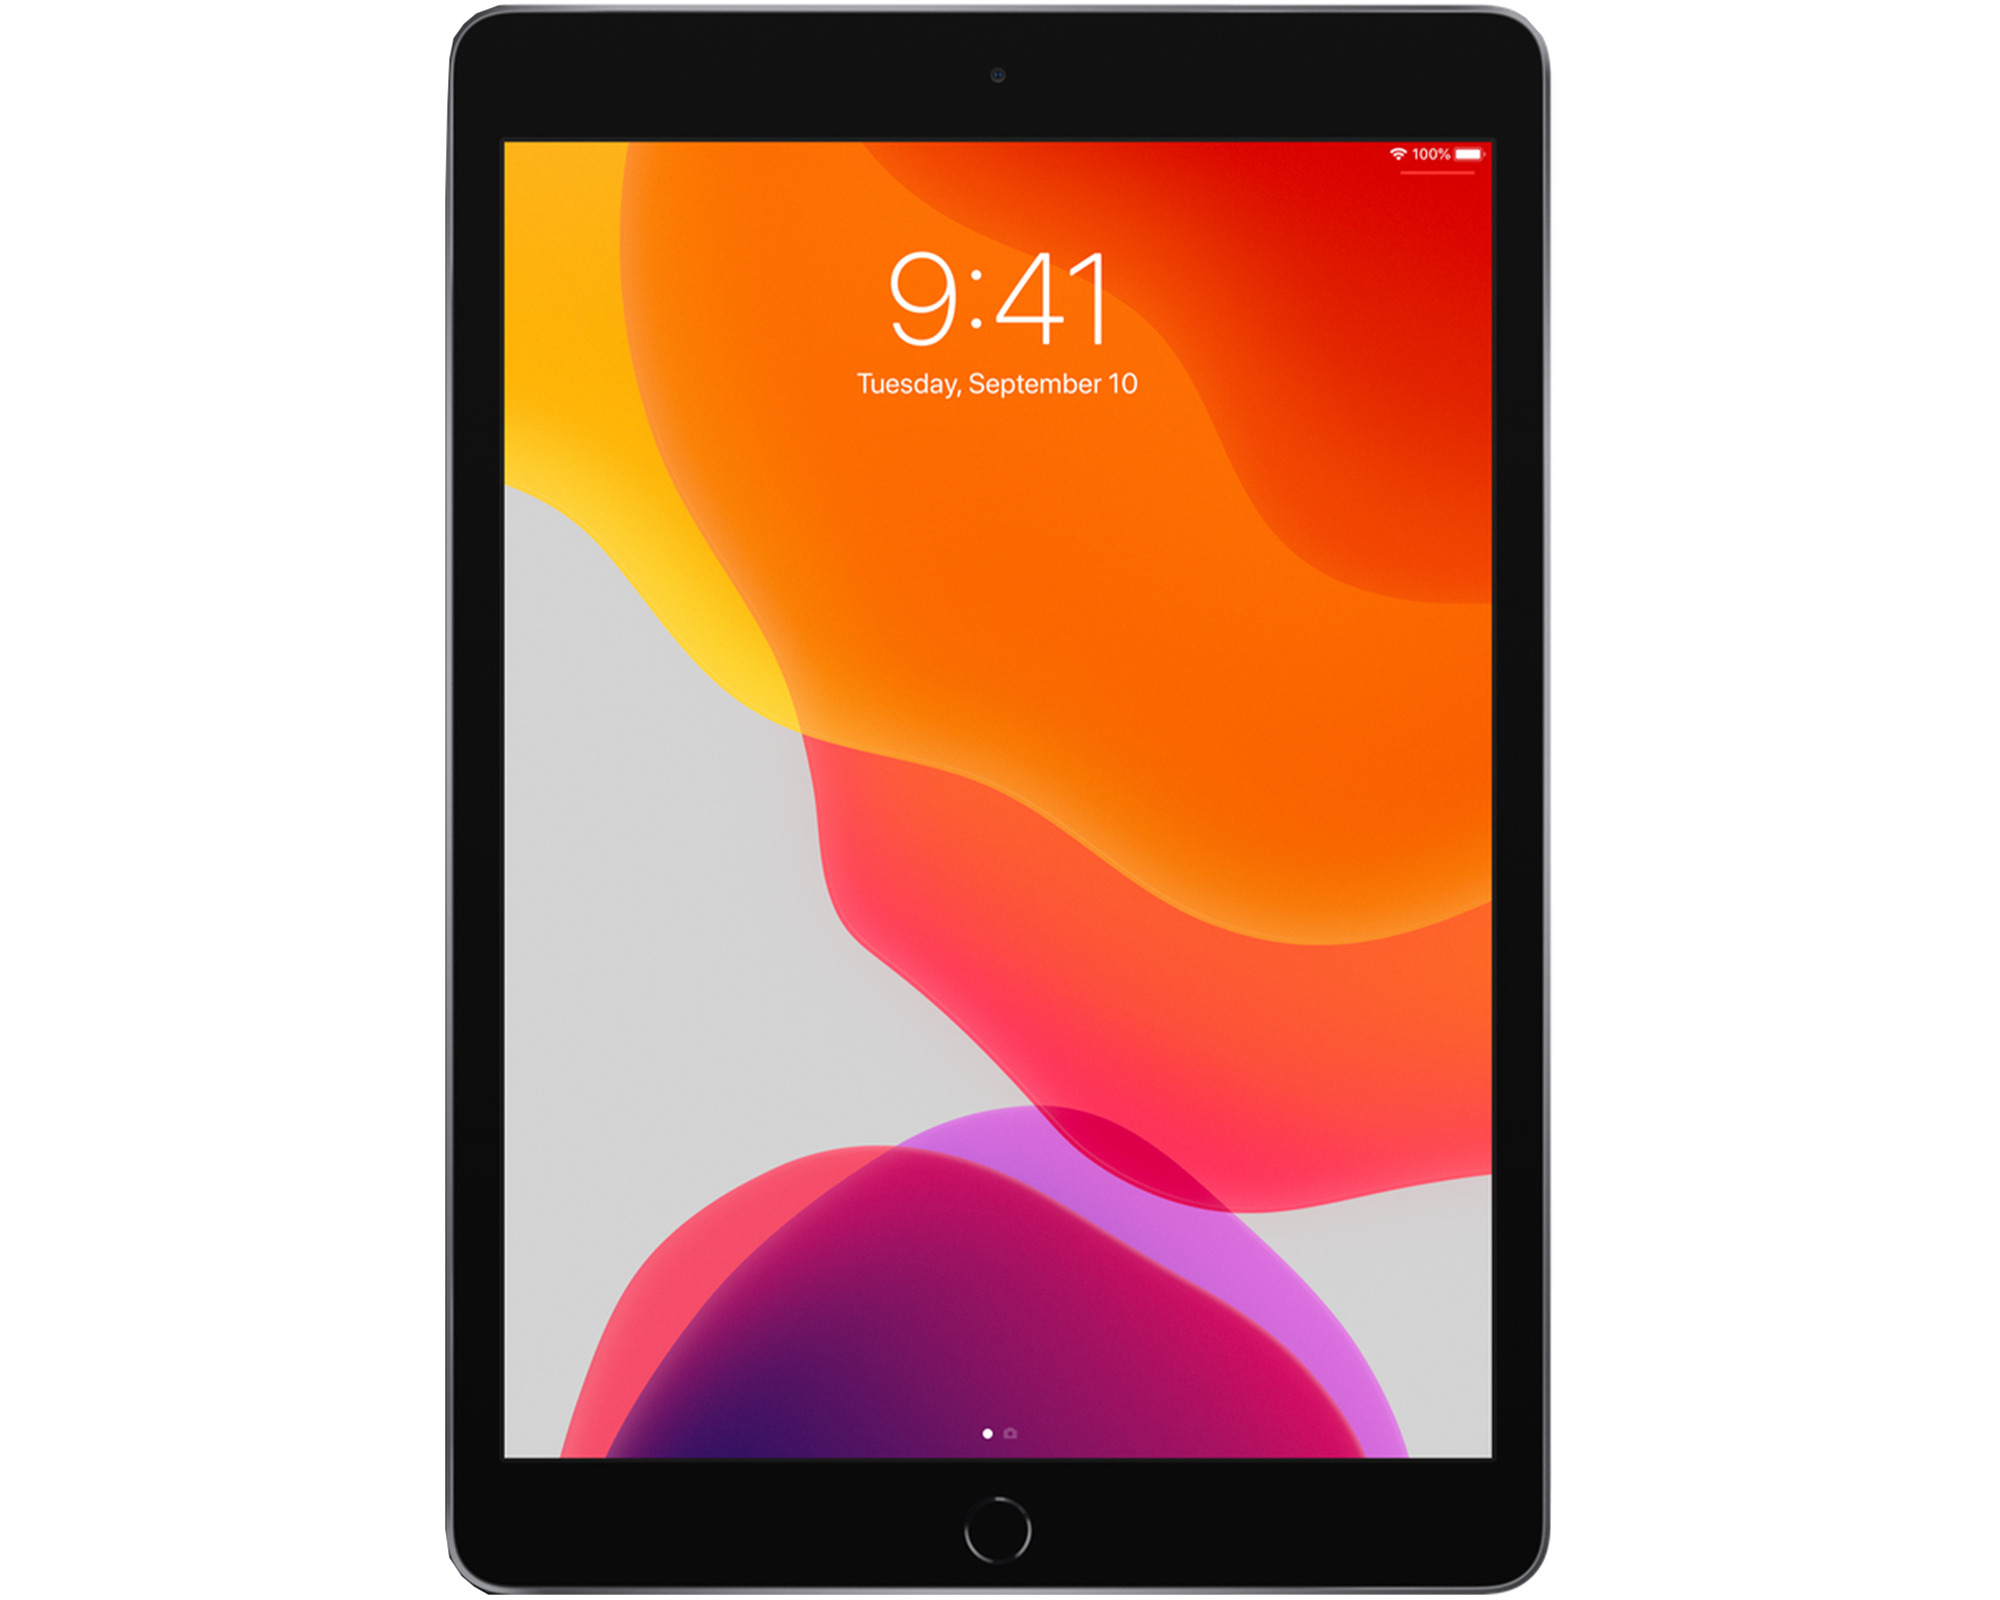 Apple iPad Air 2 – 9.7-inch, Space Gray, 64GB, Wi-Fi Only, Exclusive Bundle Deal